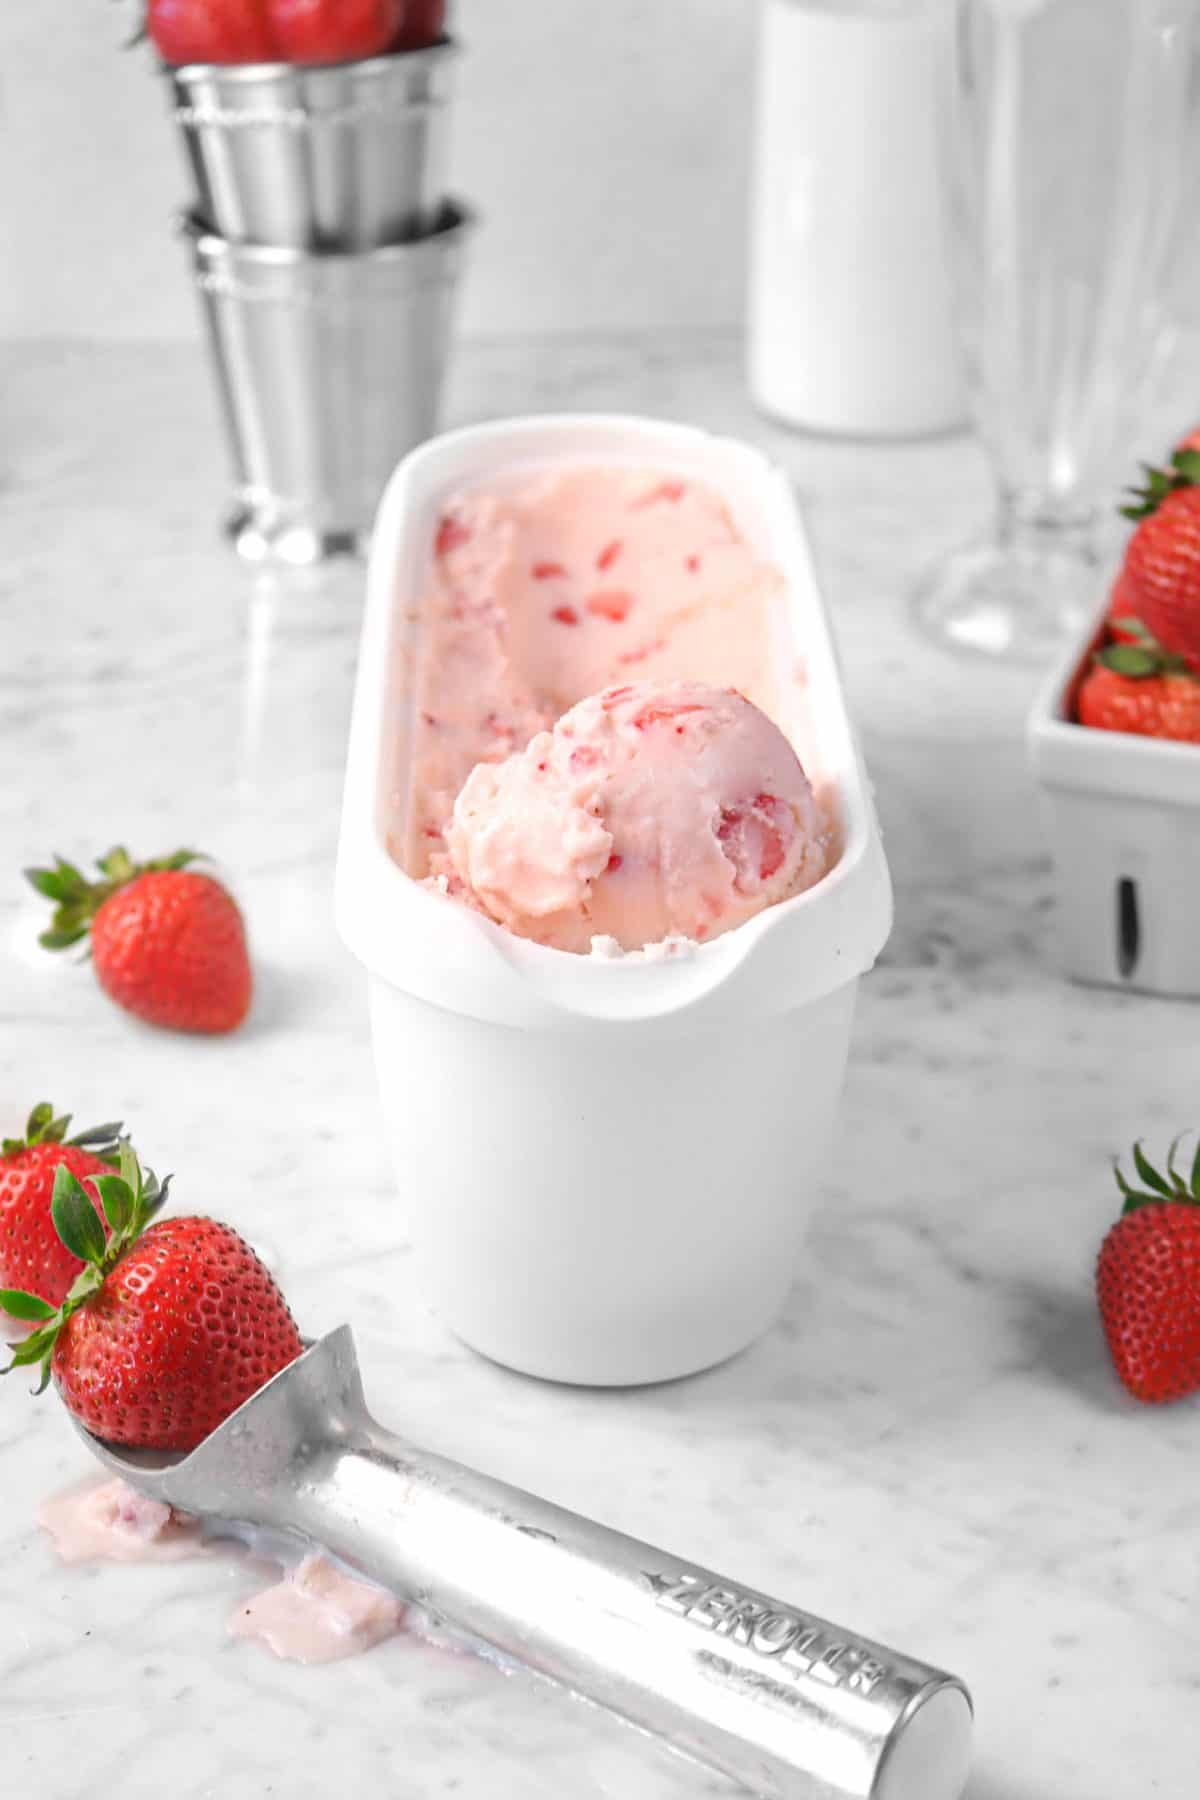 strawberry ice cream in a white container with strawberries, an ice cream scoop, and stainless steel mint julep cups in the background